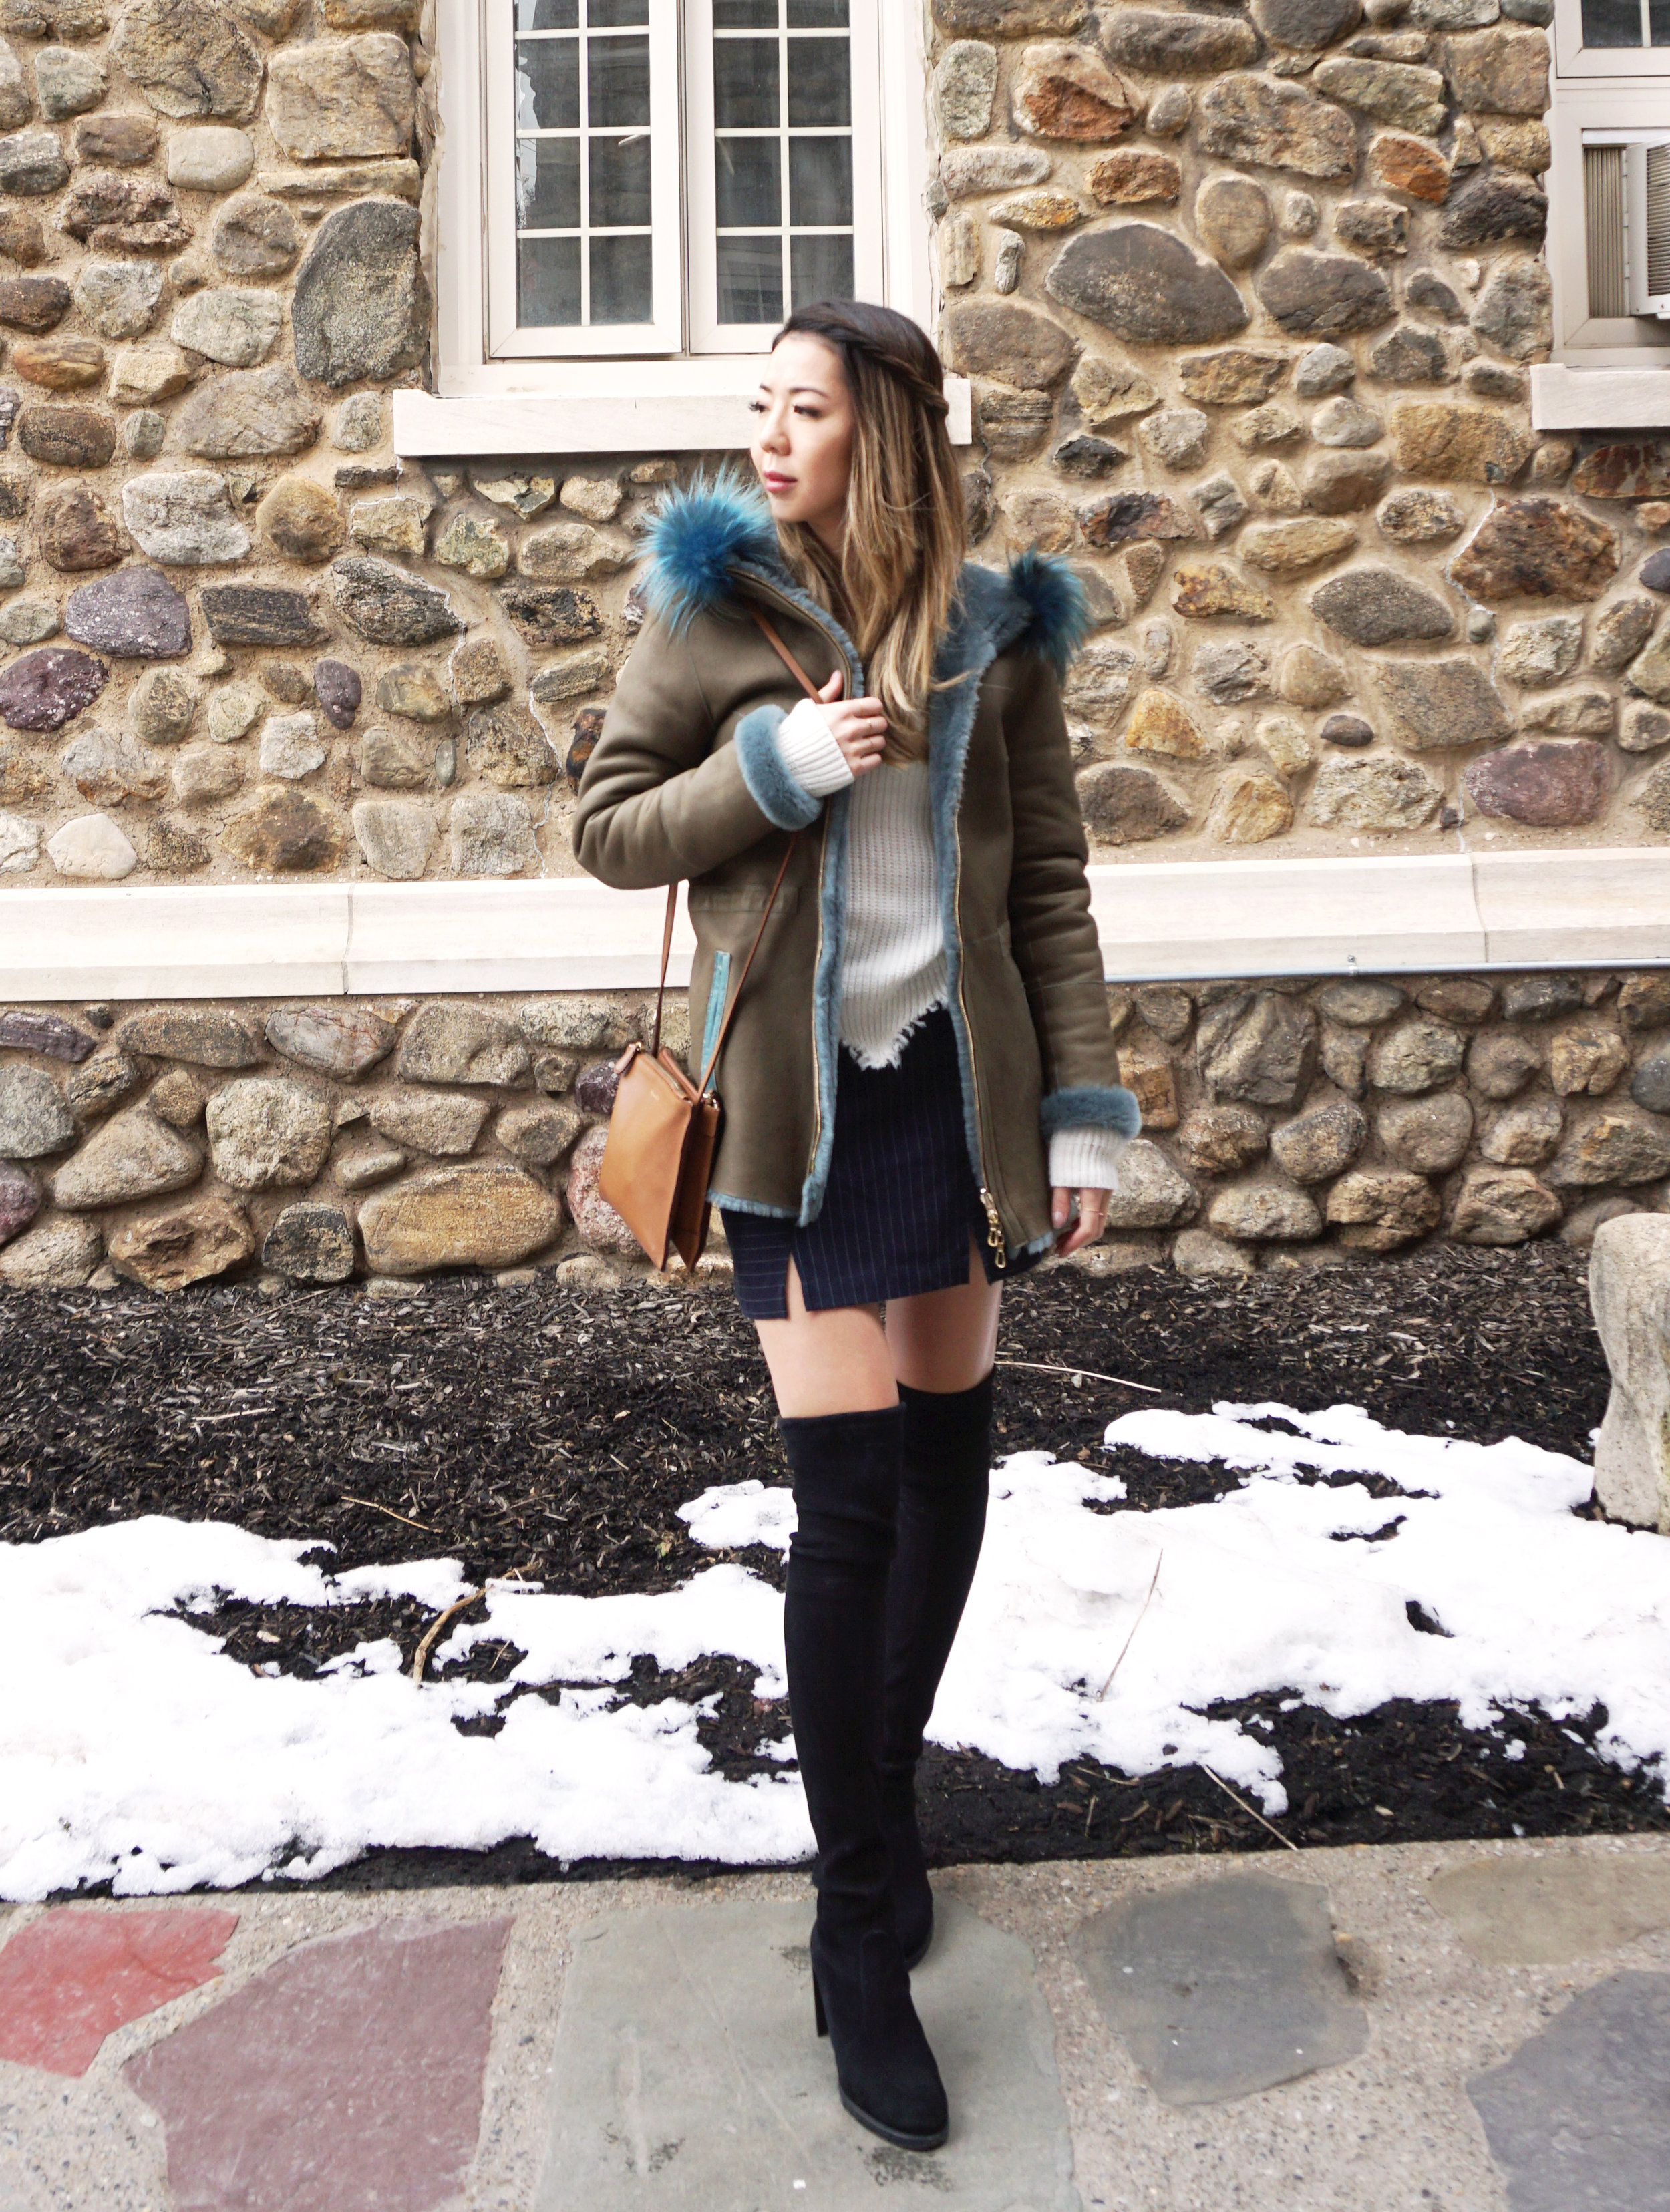 OOTD: WINTER TO SPRING - 03.10.19